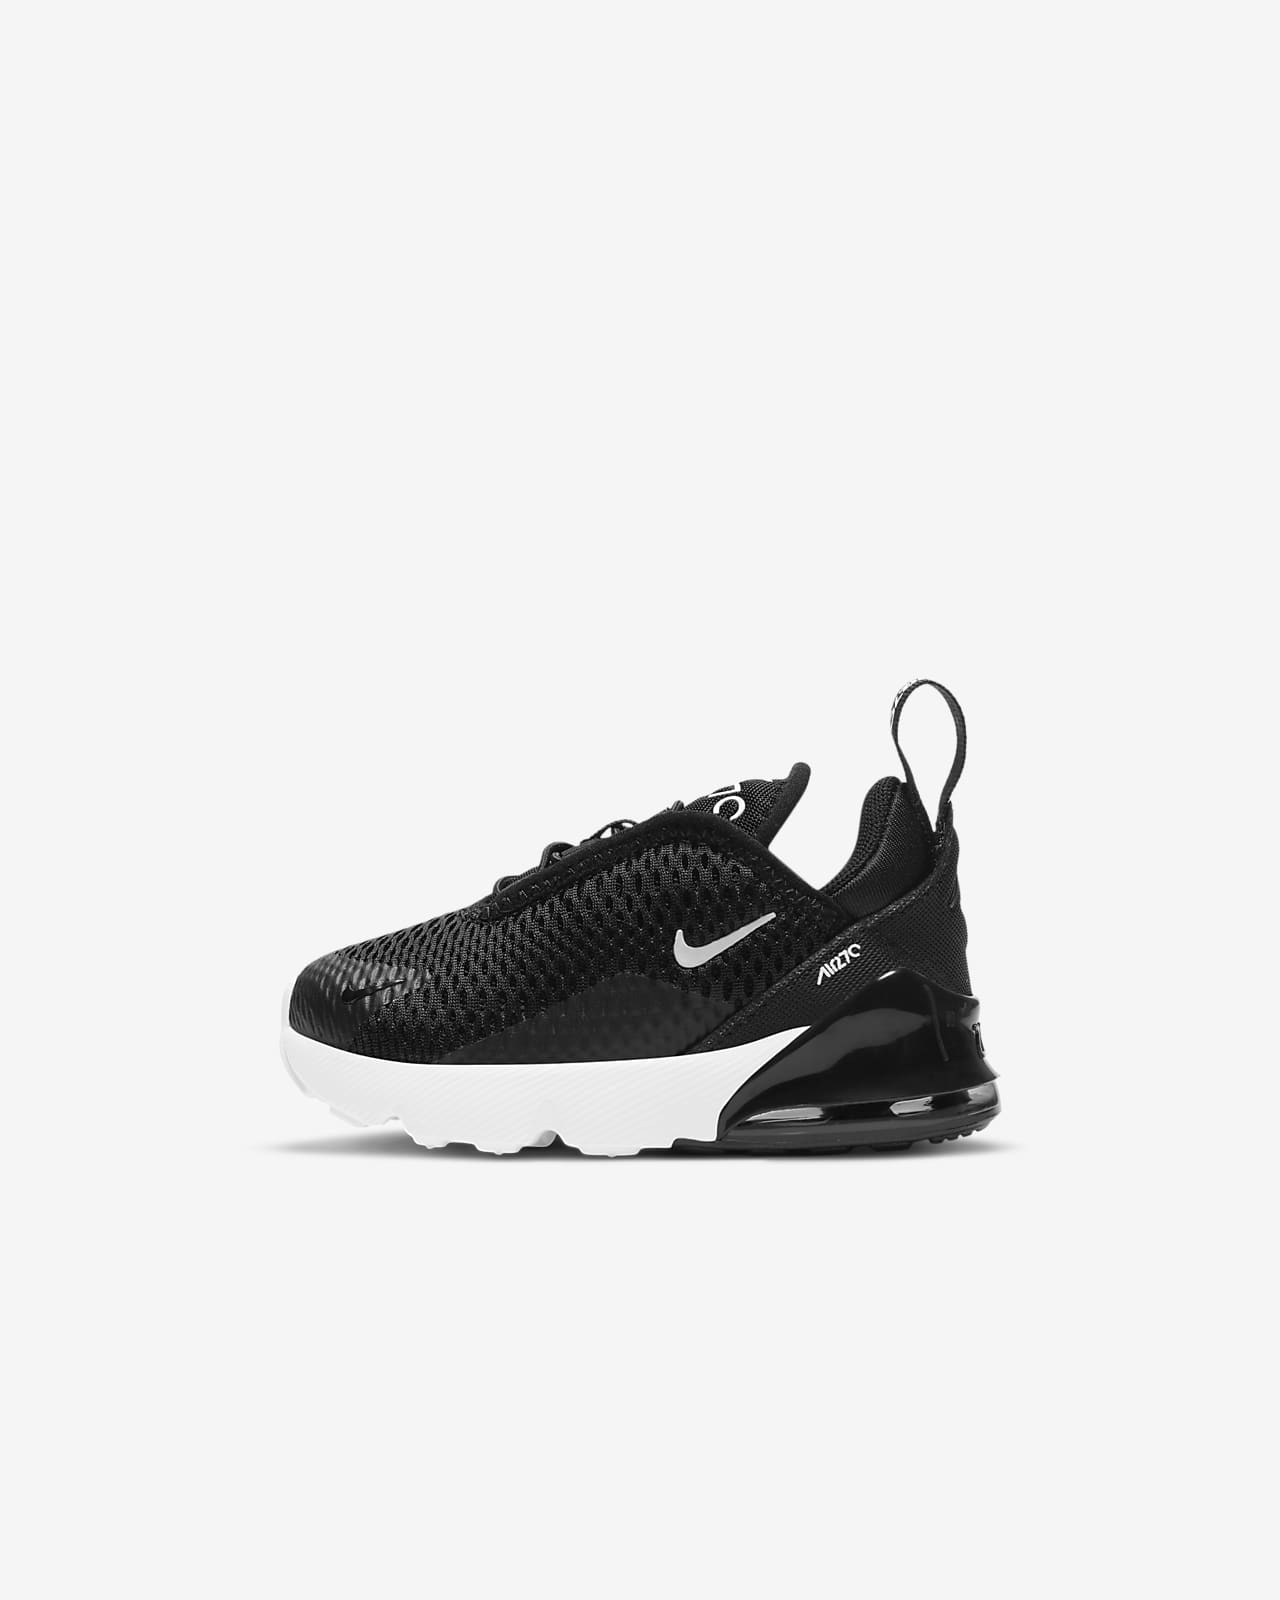 Nike Air Max 270 Baby/Toddler Shoe